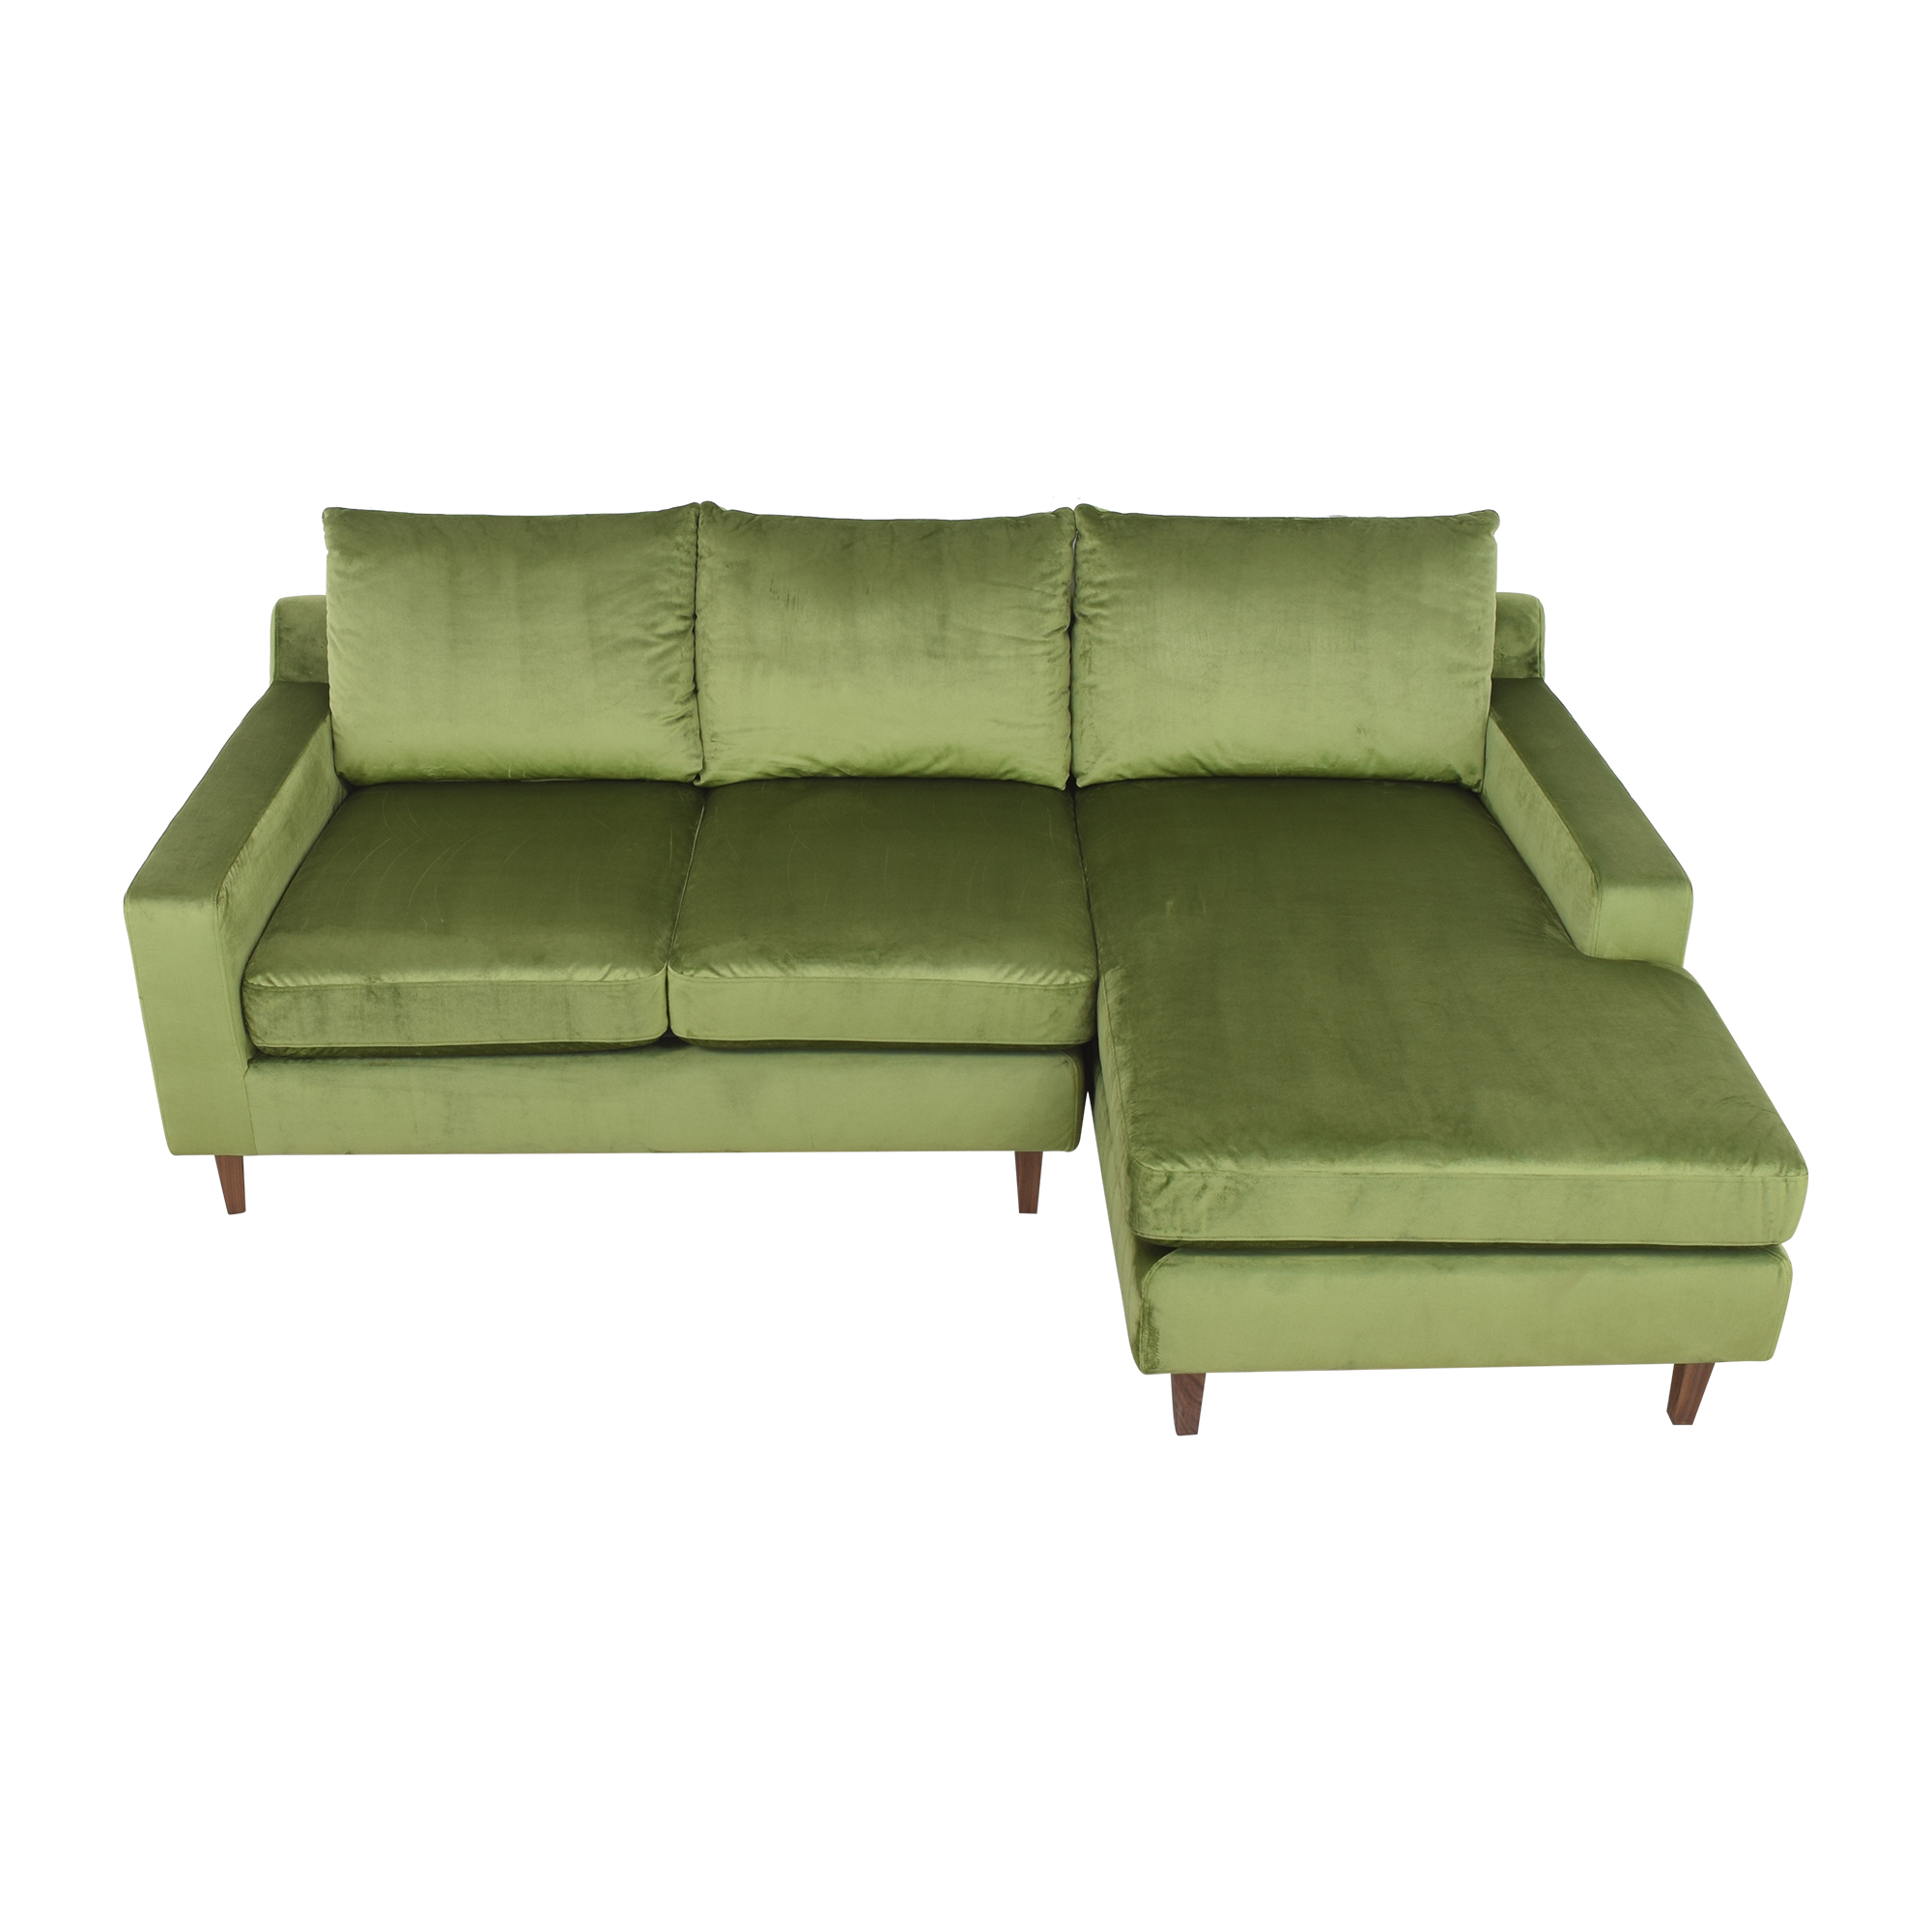 Interior Define Interior Define Sloan Sectional Sofa with Chaise ct